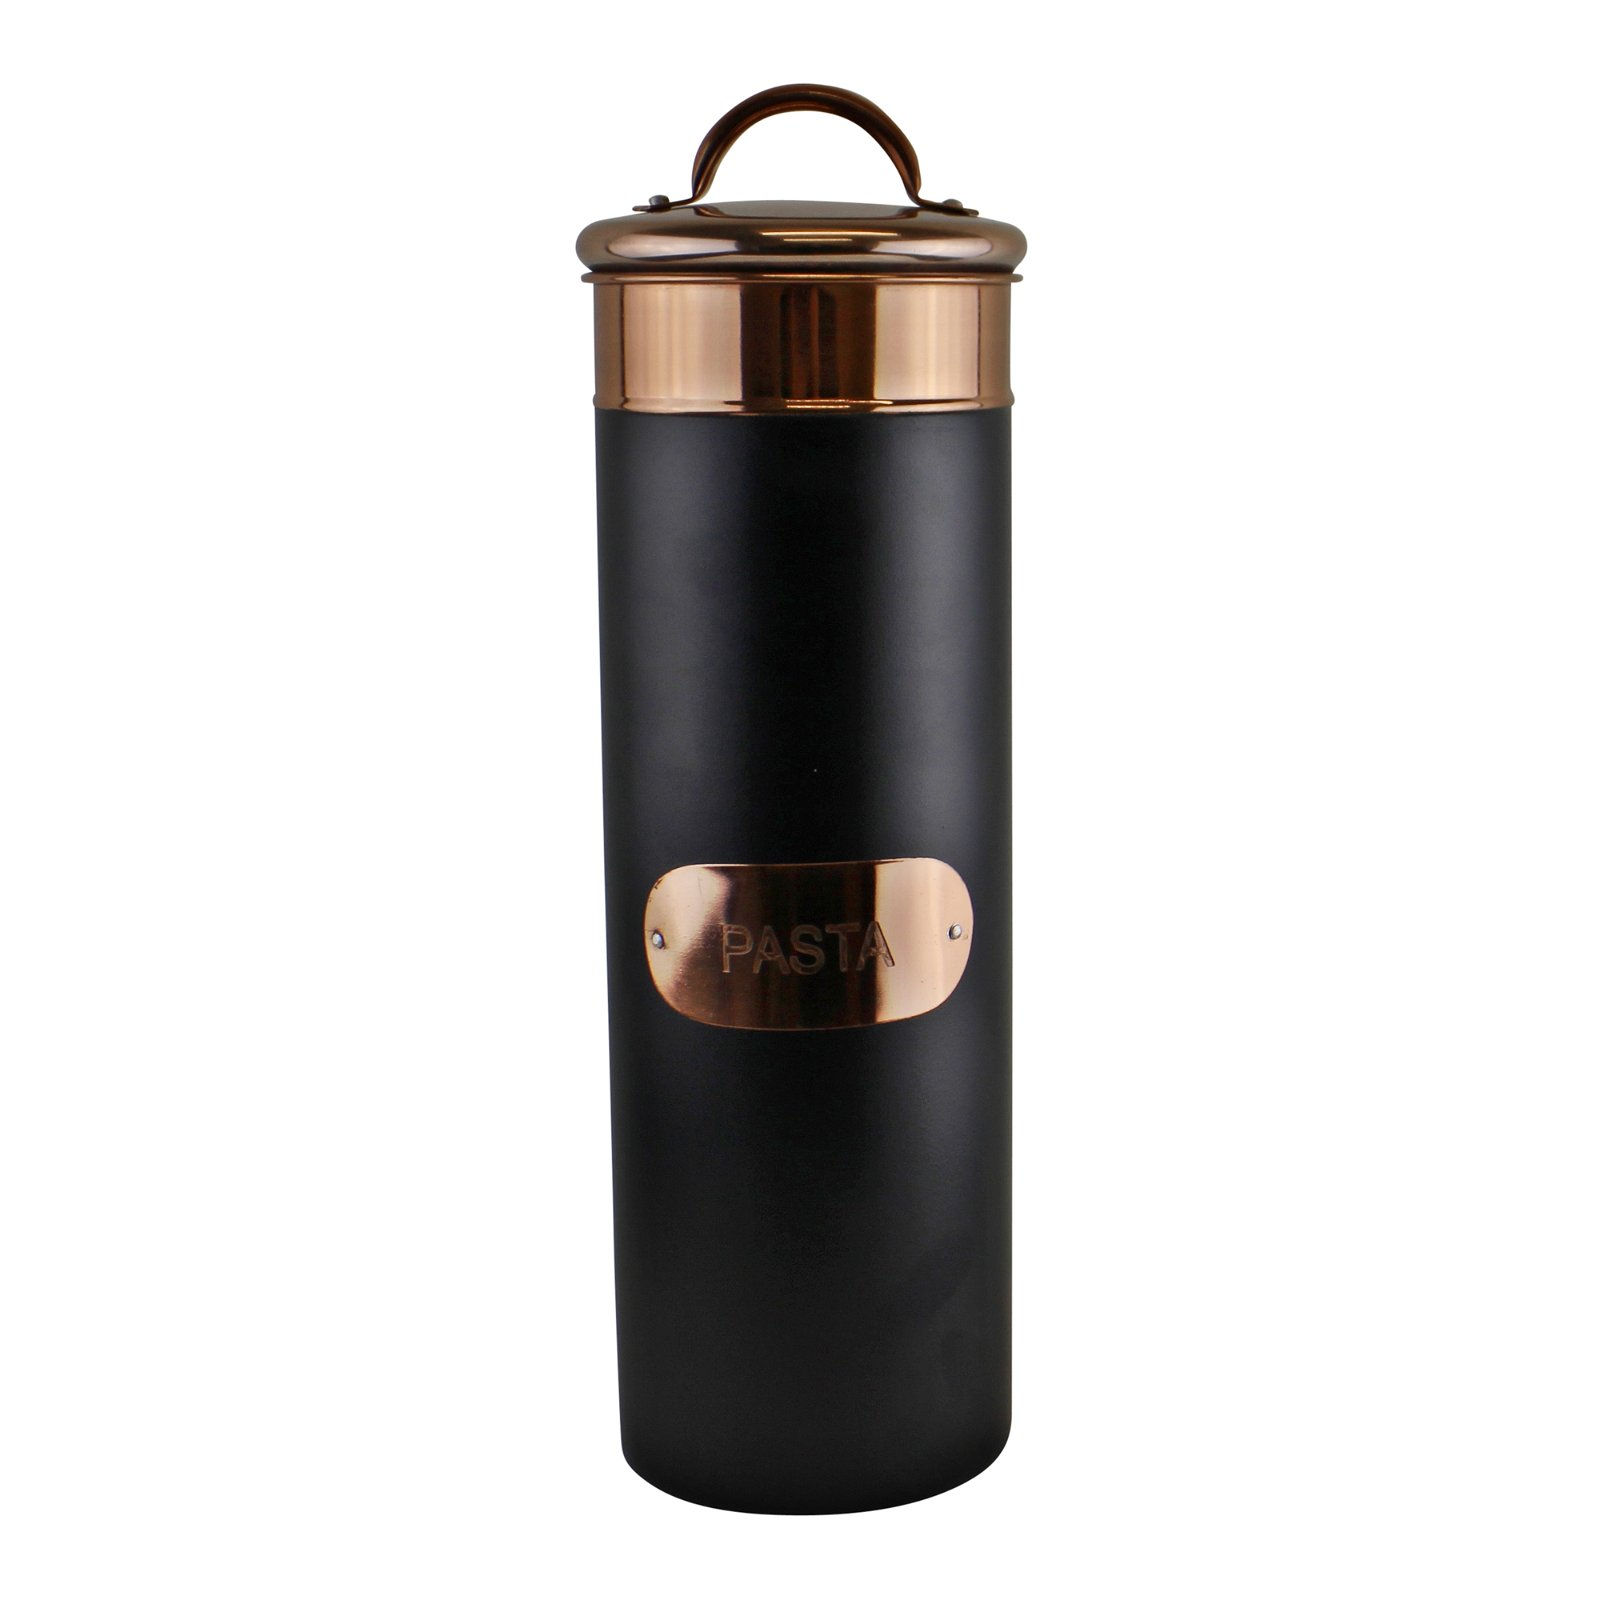 Black & Copper Metal Pasta Tin